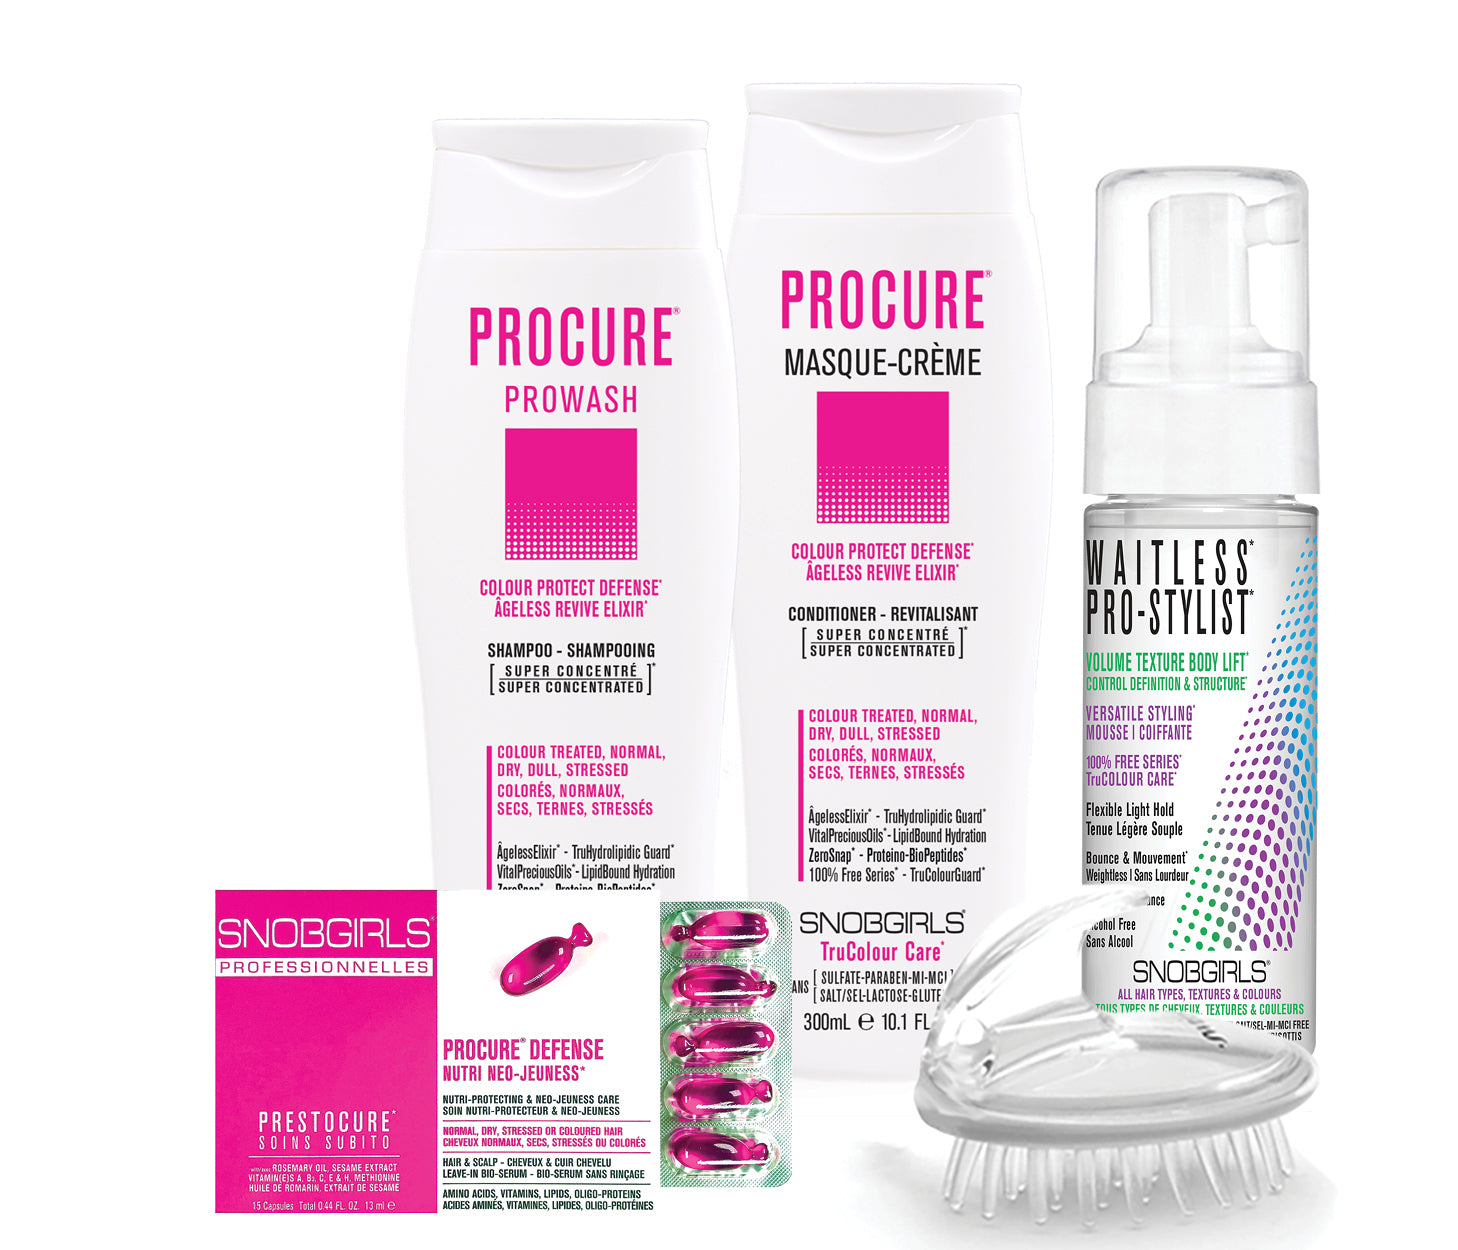 PROCURE BOX COLOUR PROTECT DEFENSE Bundle